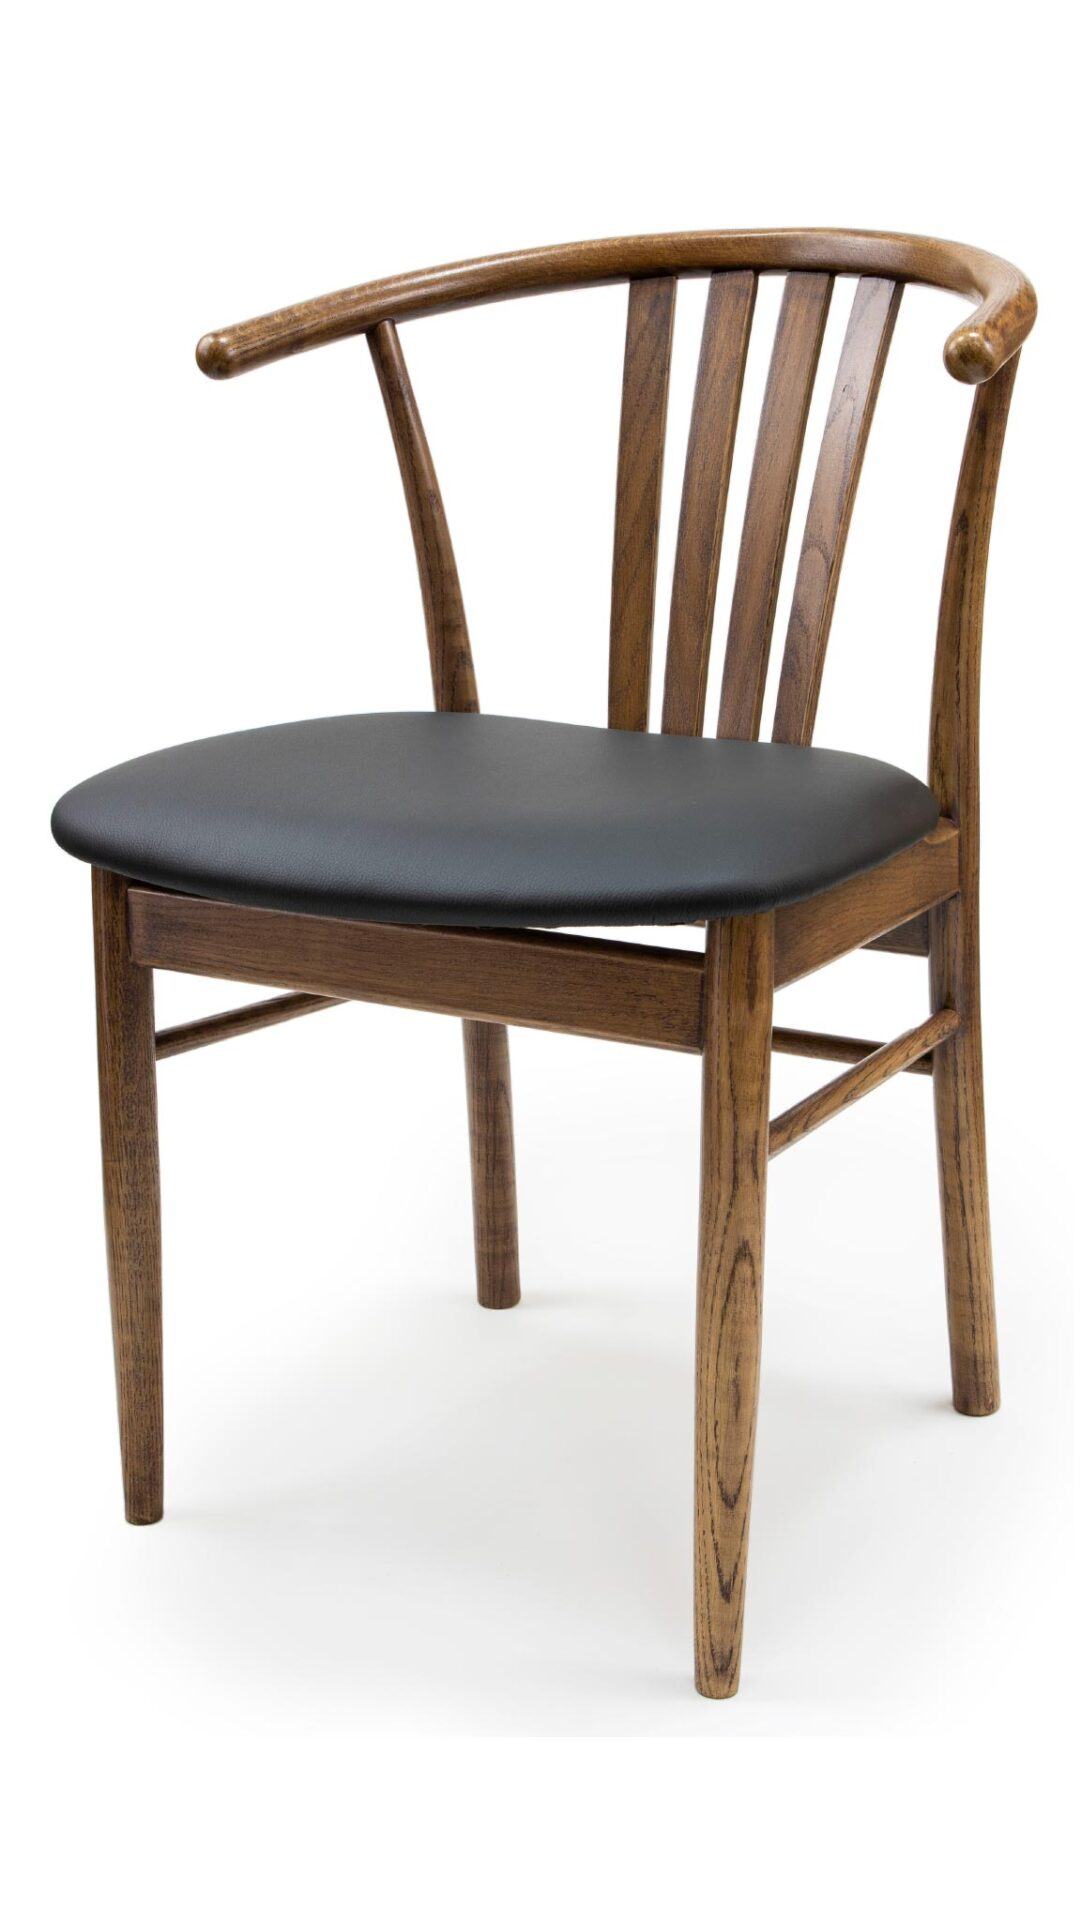 Solid Wood Chair made of Beech or Oak - 1326S